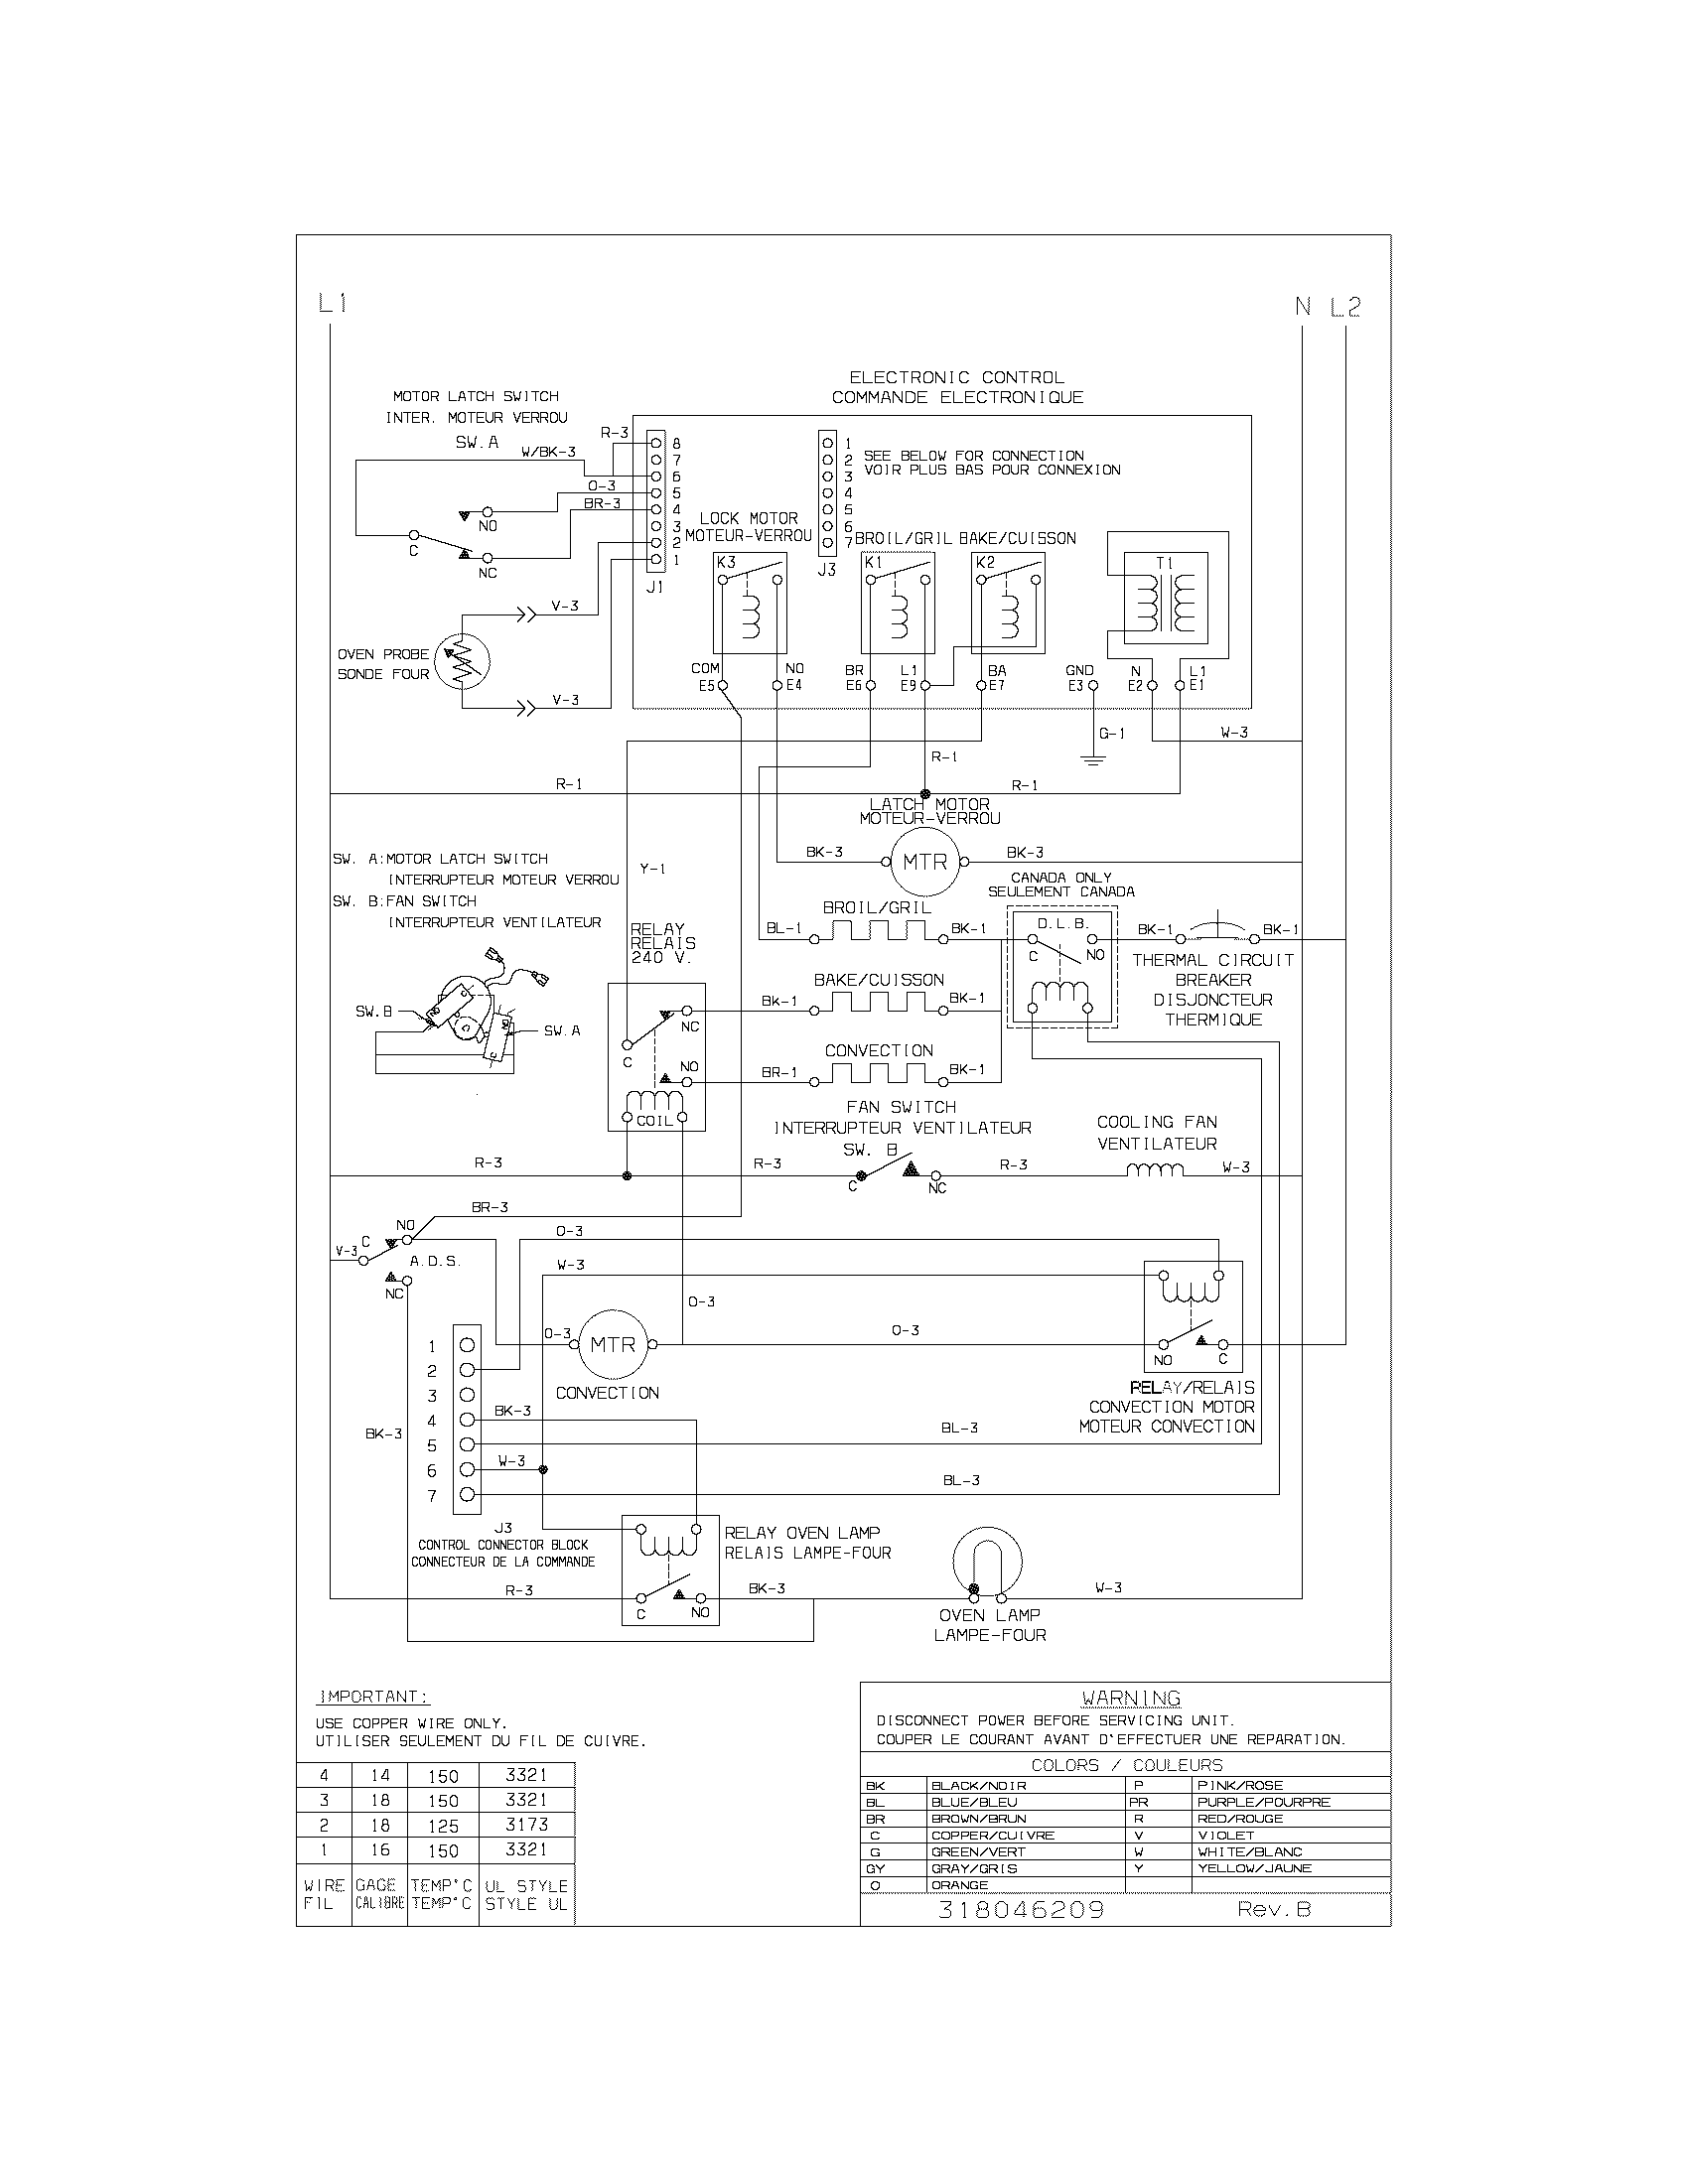 wiring diagram parts frigidaire cgeb27s7cs1 electric walloven timer stove clocks and frigidaire dishwasher wiring diagram at honlapkeszites.co